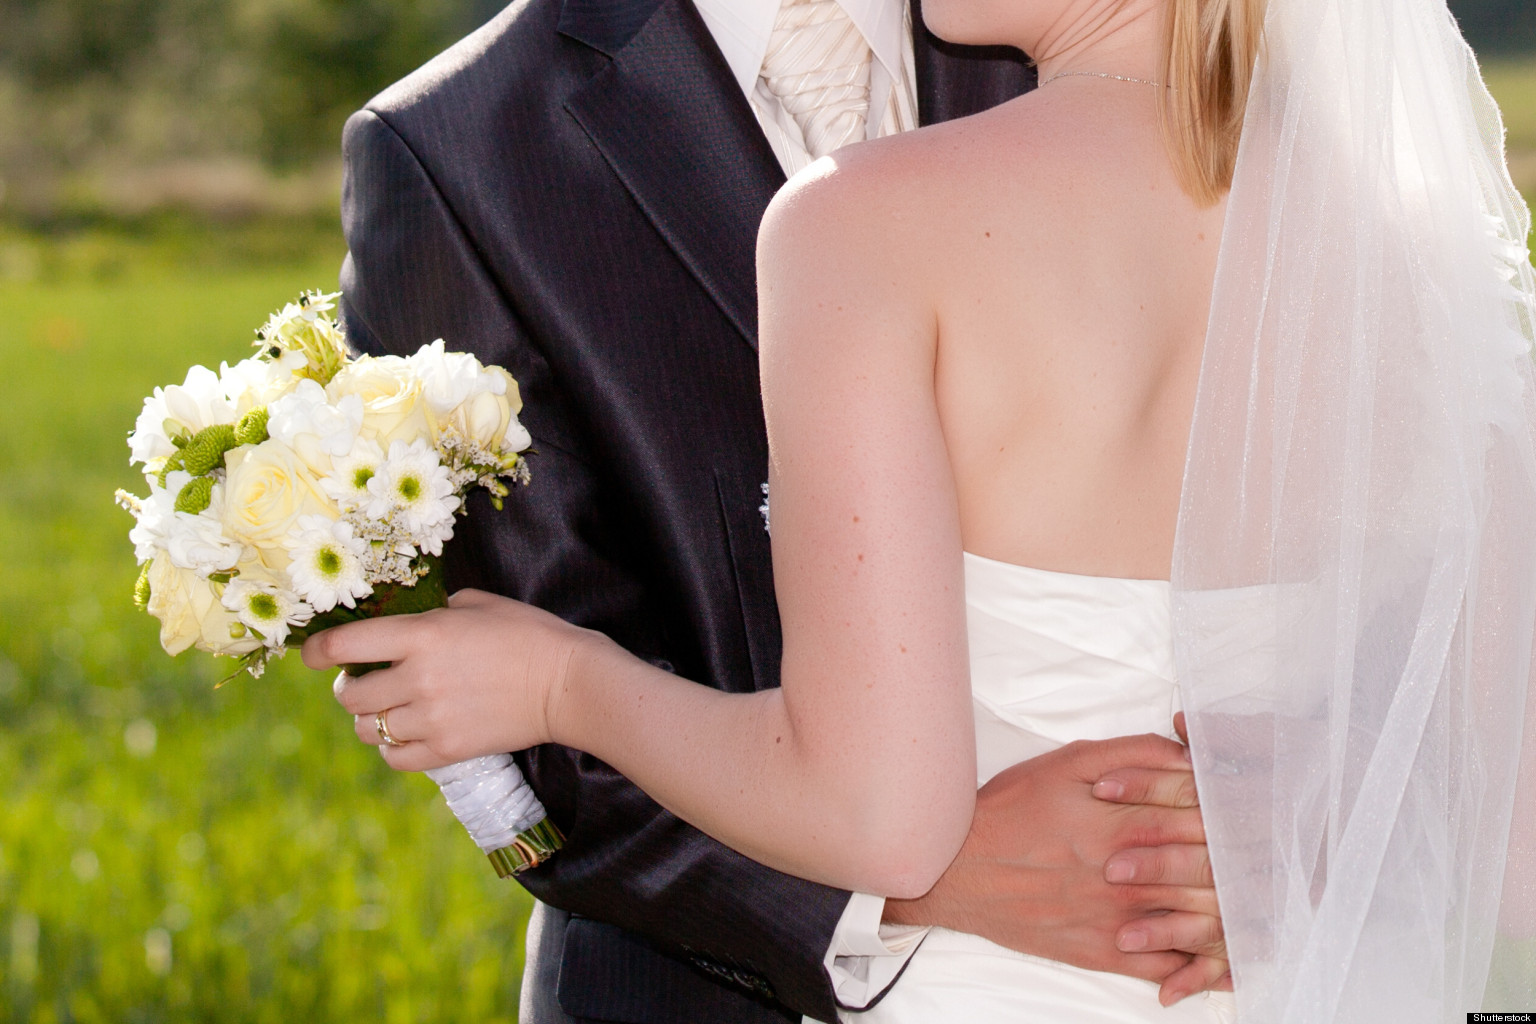 Marriage Rates Are Increasing For A Surprising Reason